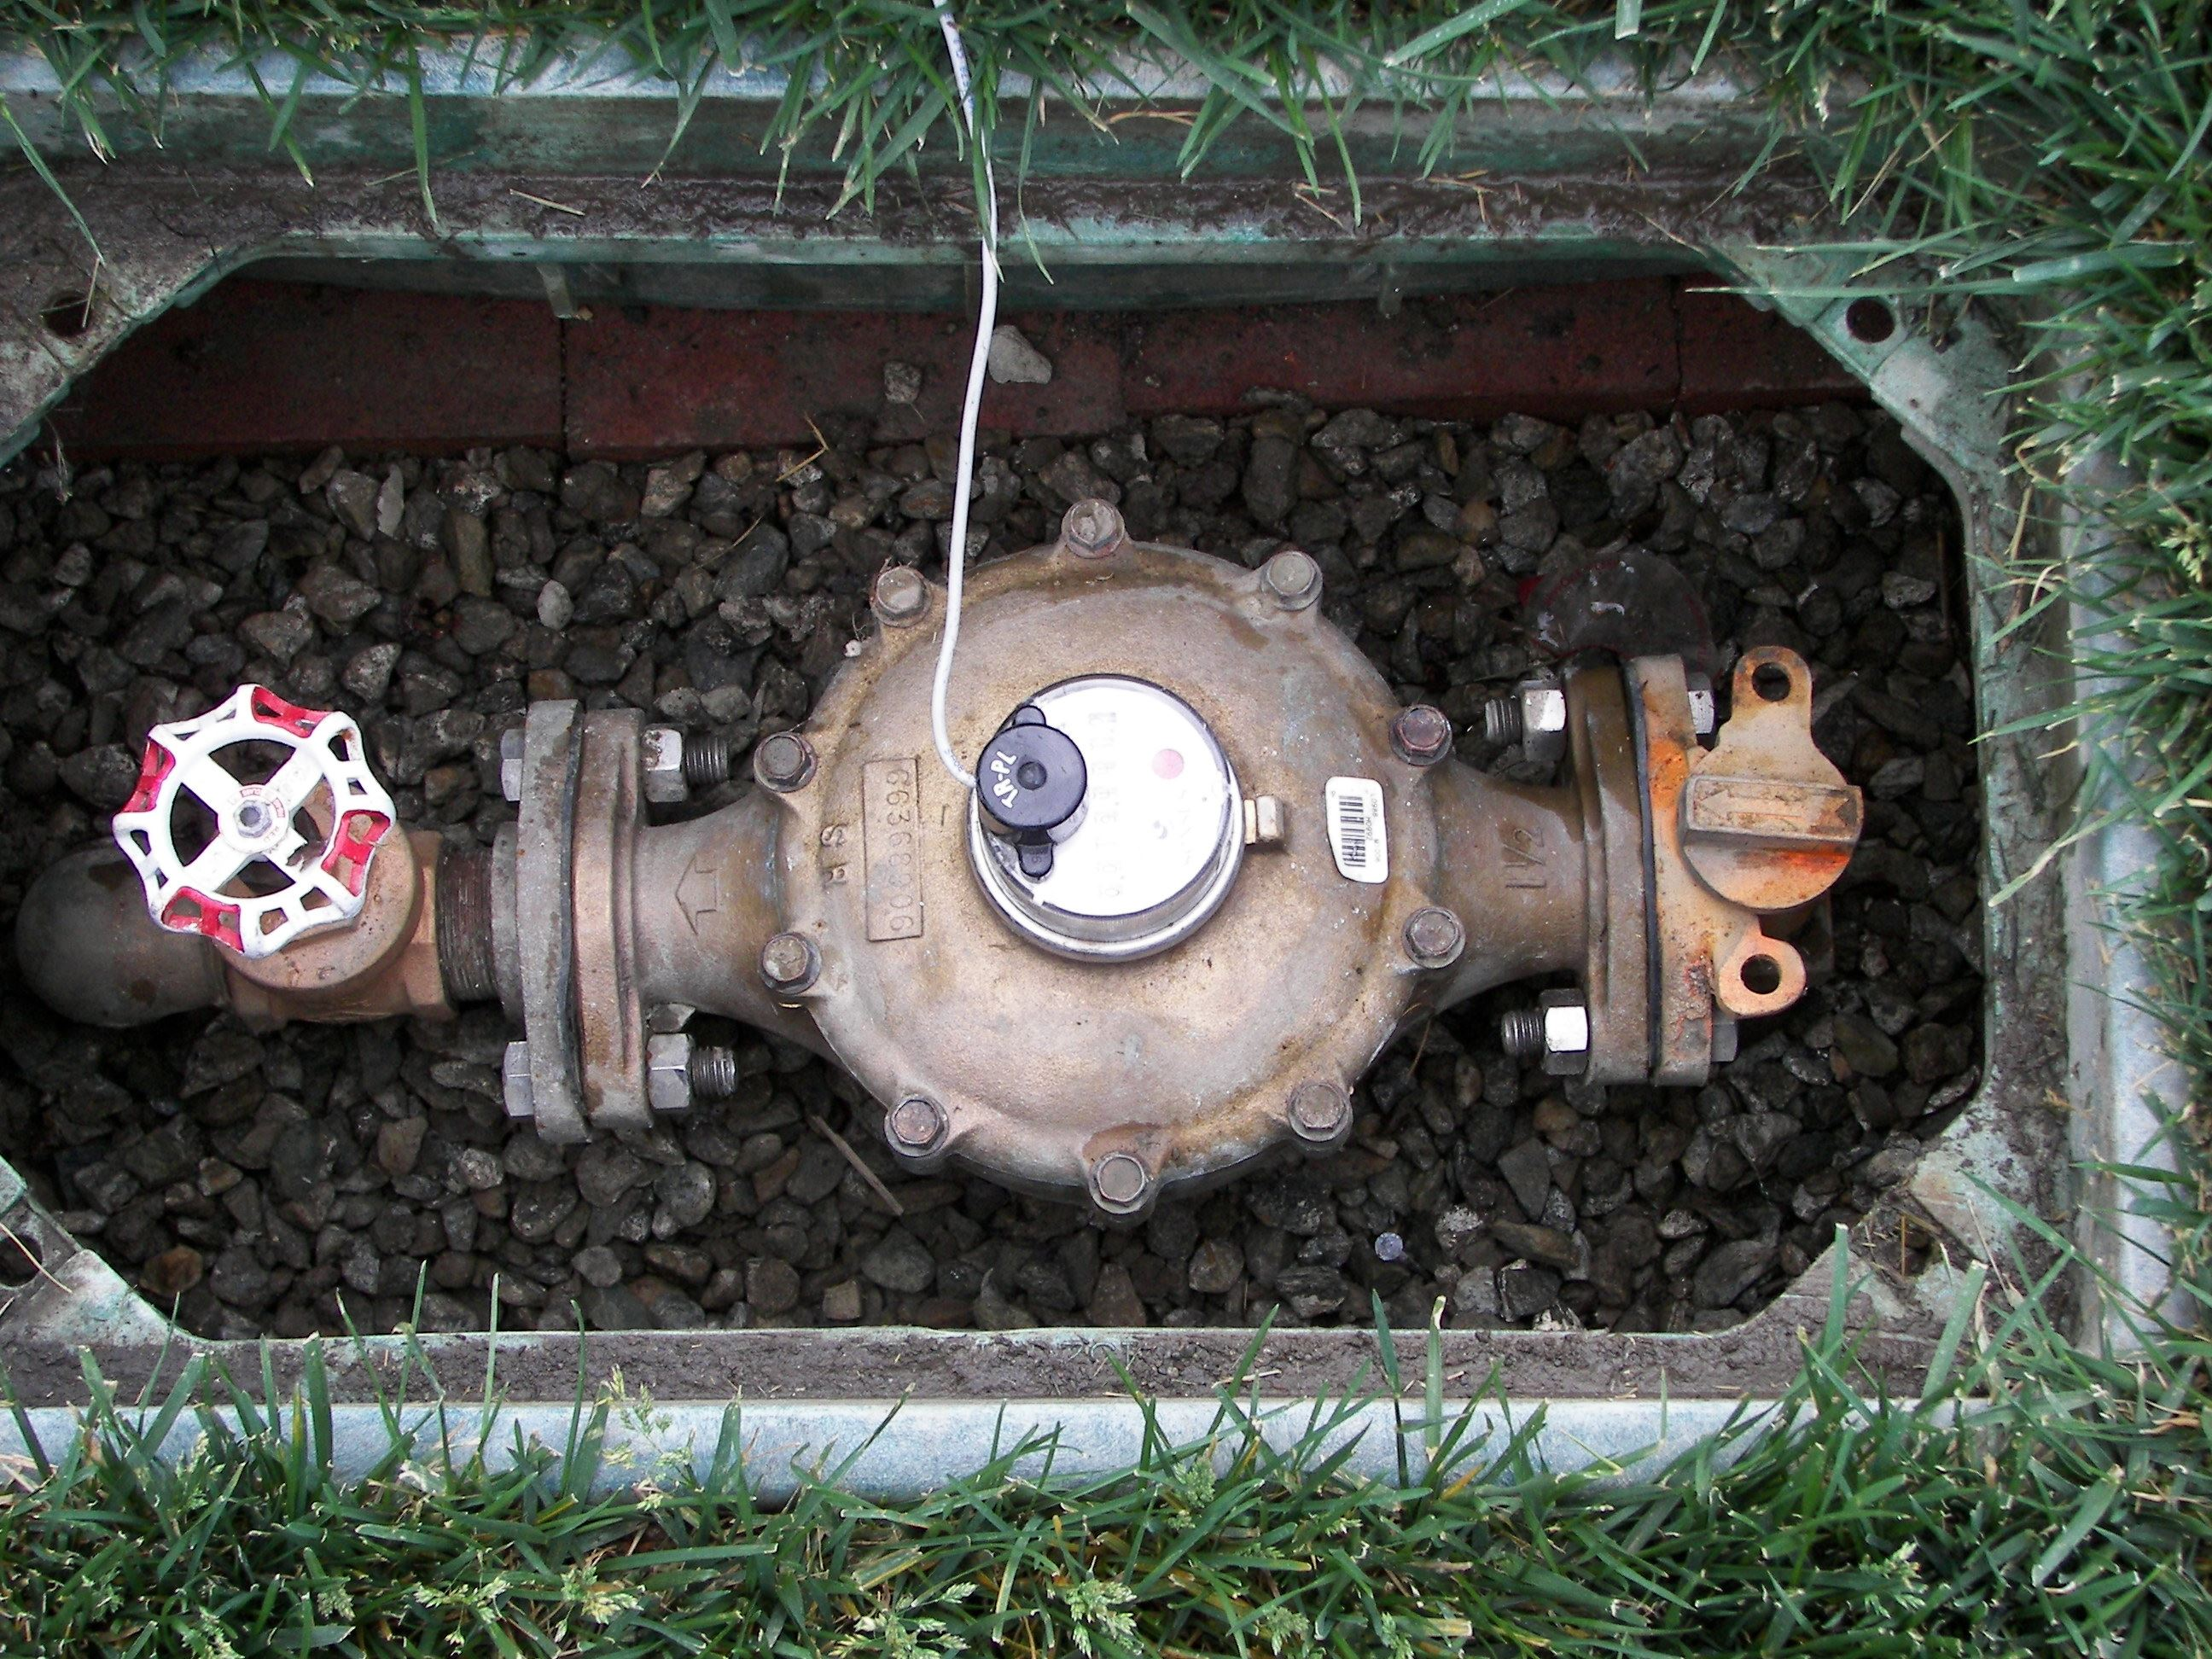 Water Meter Under the Ground